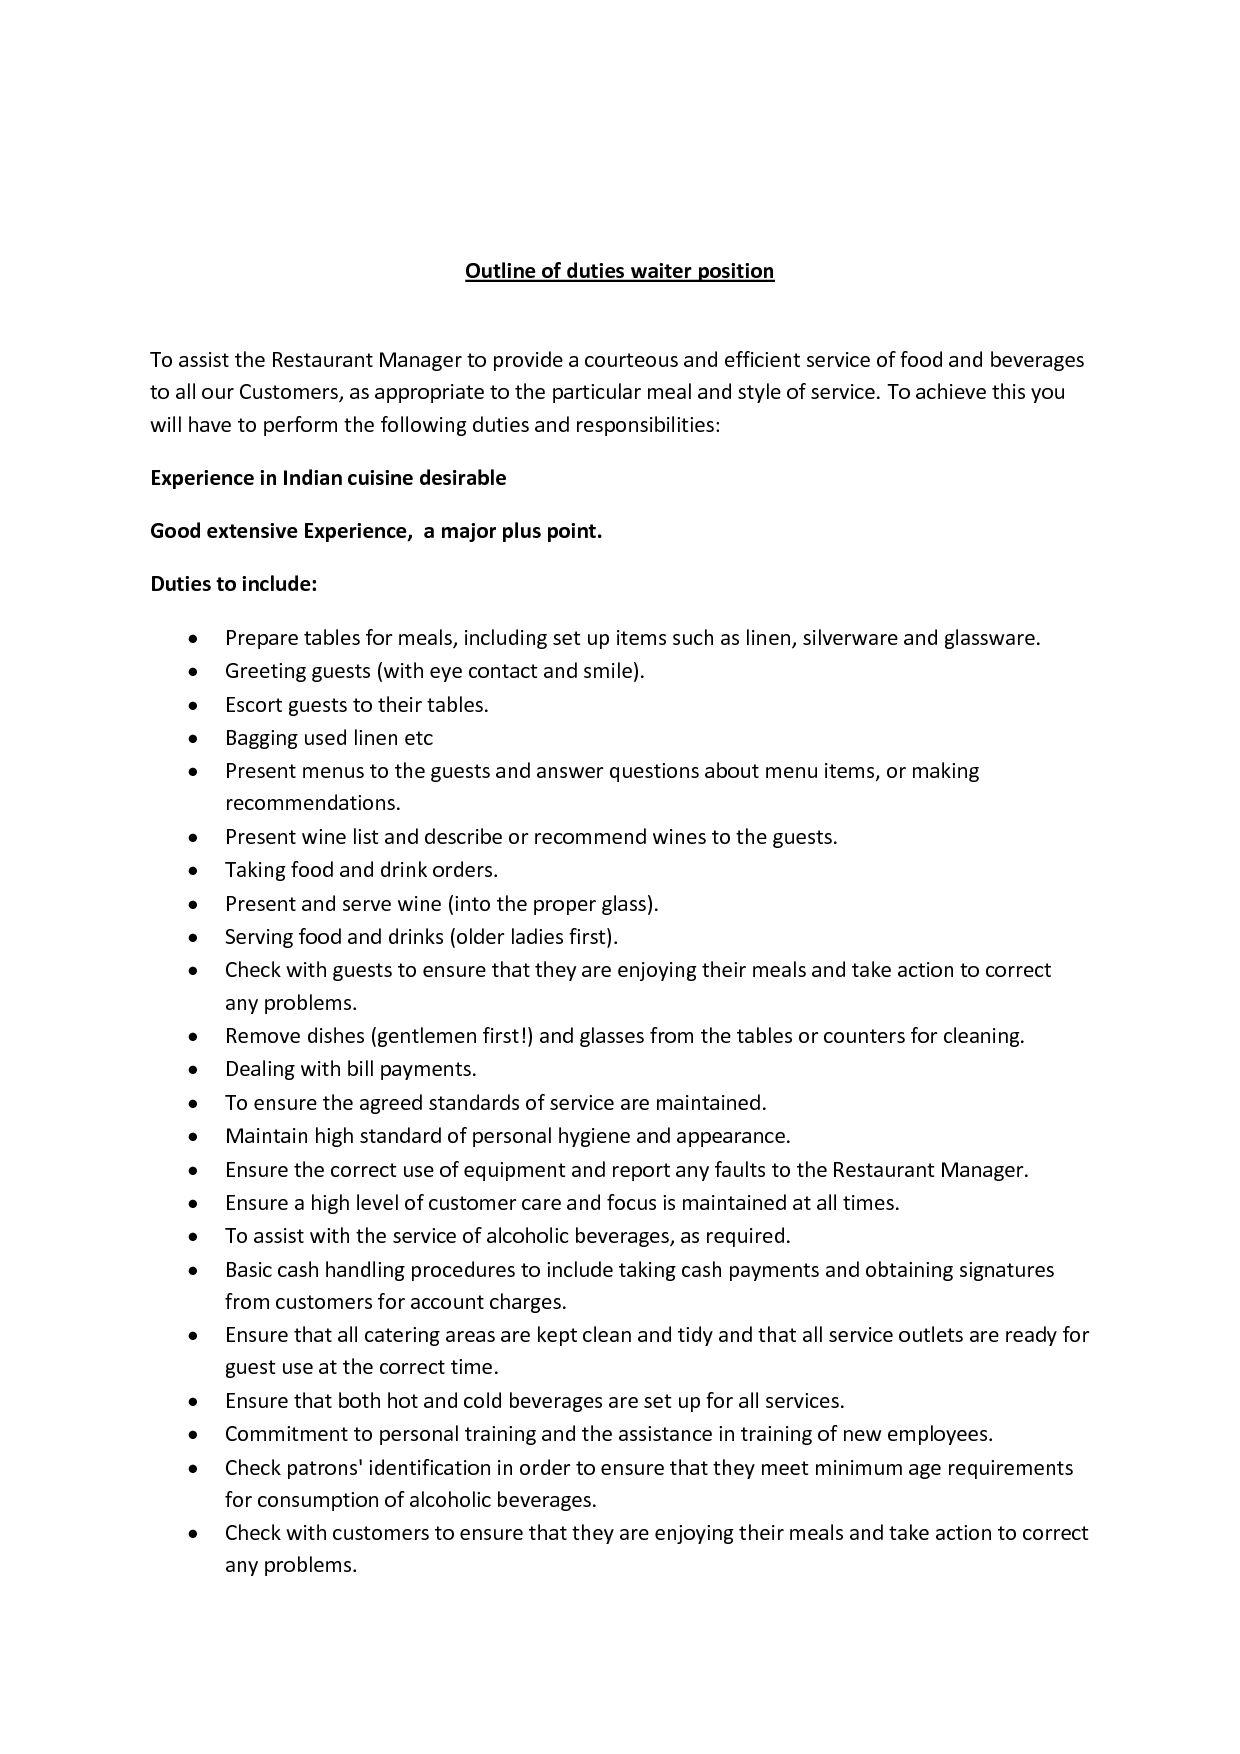 Outline To A Restaurant Business  Outline Of Duties Waiter